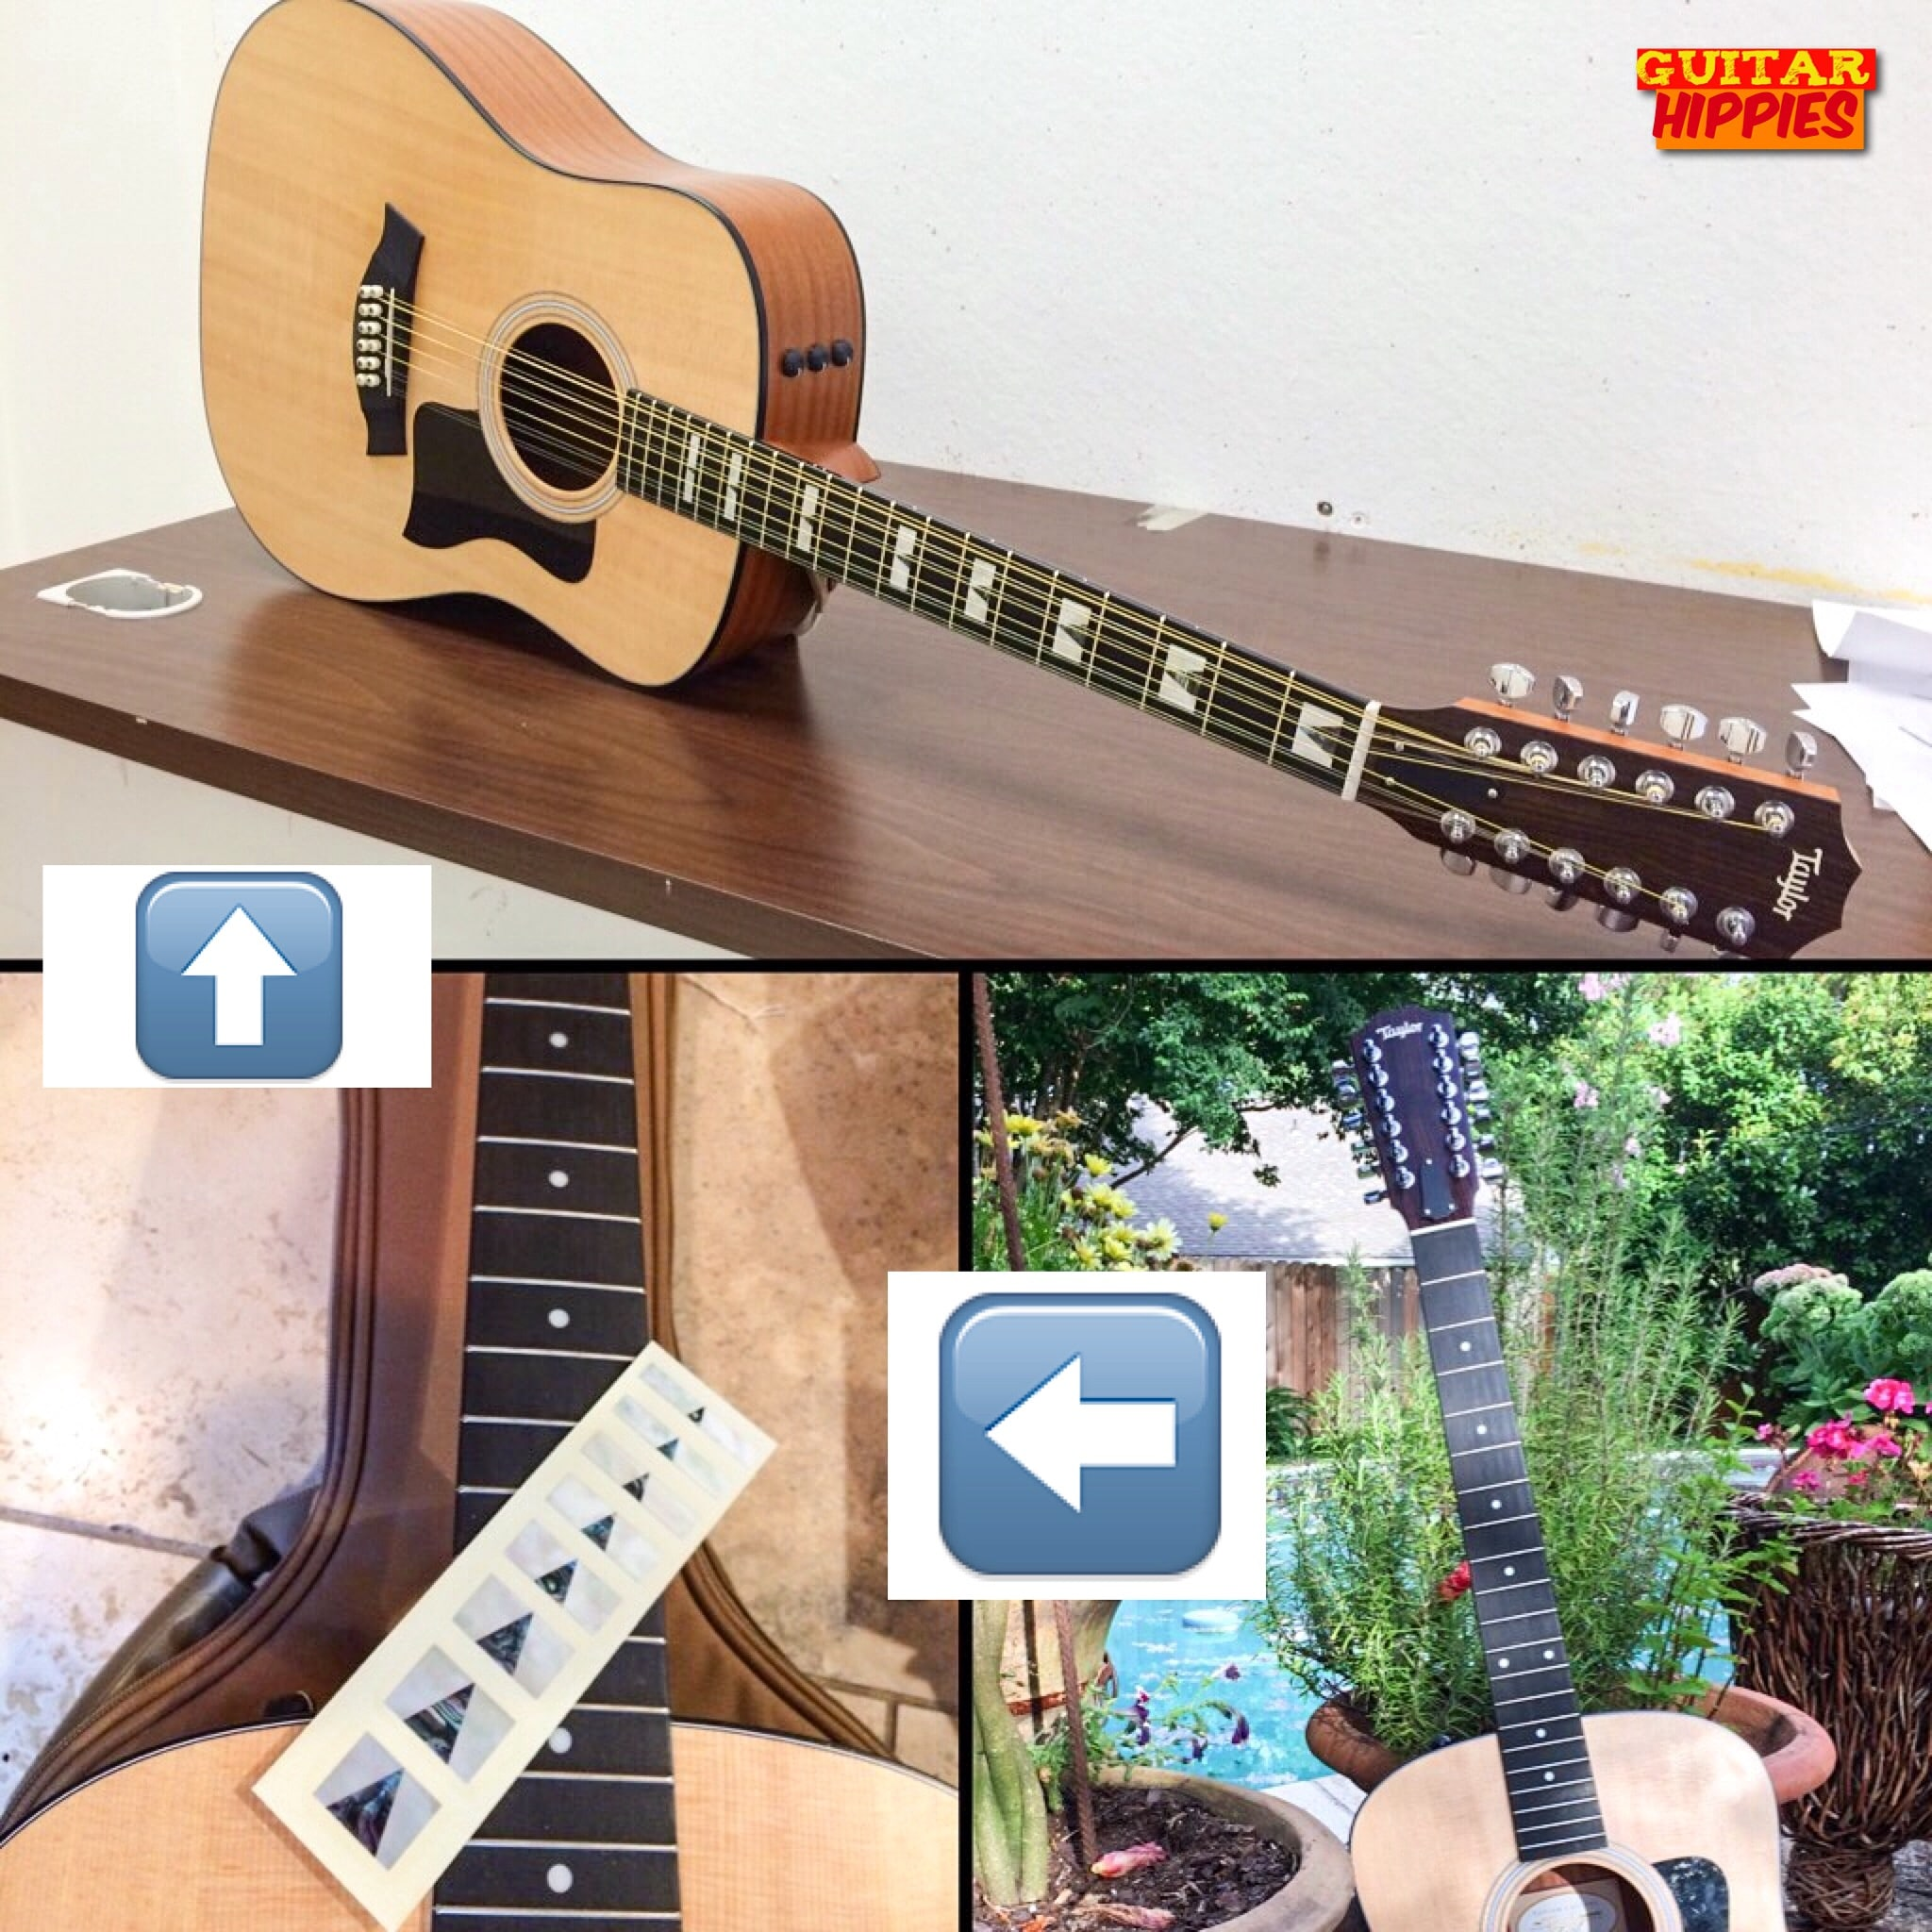 9 different ways to customize your guitar almost for free. Black Bedroom Furniture Sets. Home Design Ideas